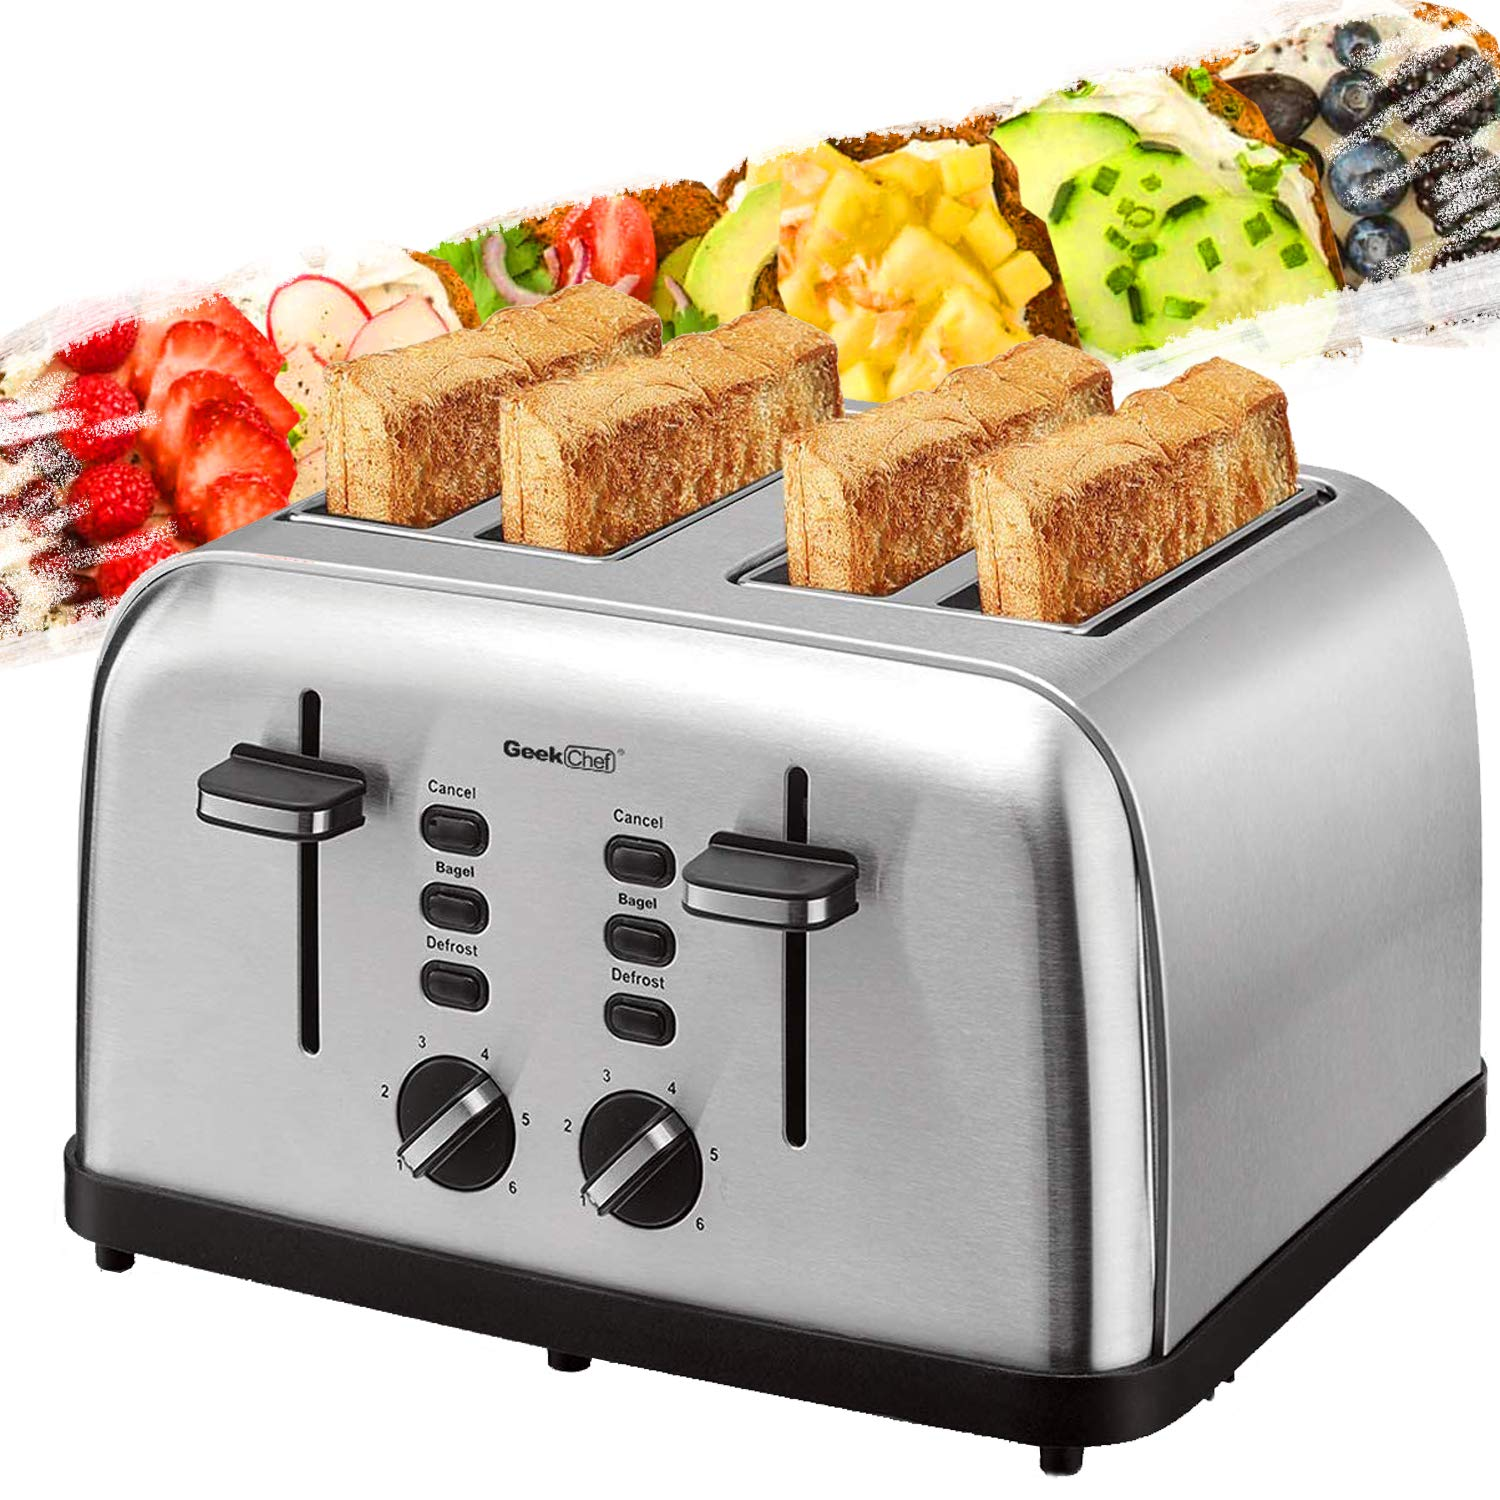 Toaster 4 Slice, Geek Chef Extra Wide Slots Stainless Steel Four Slice Toaster, Bagel/Defrost/Cancel Function 6 Browning Settings Auto Pop-up Remoable Crumb Tray (4-slice) by Geek Chef